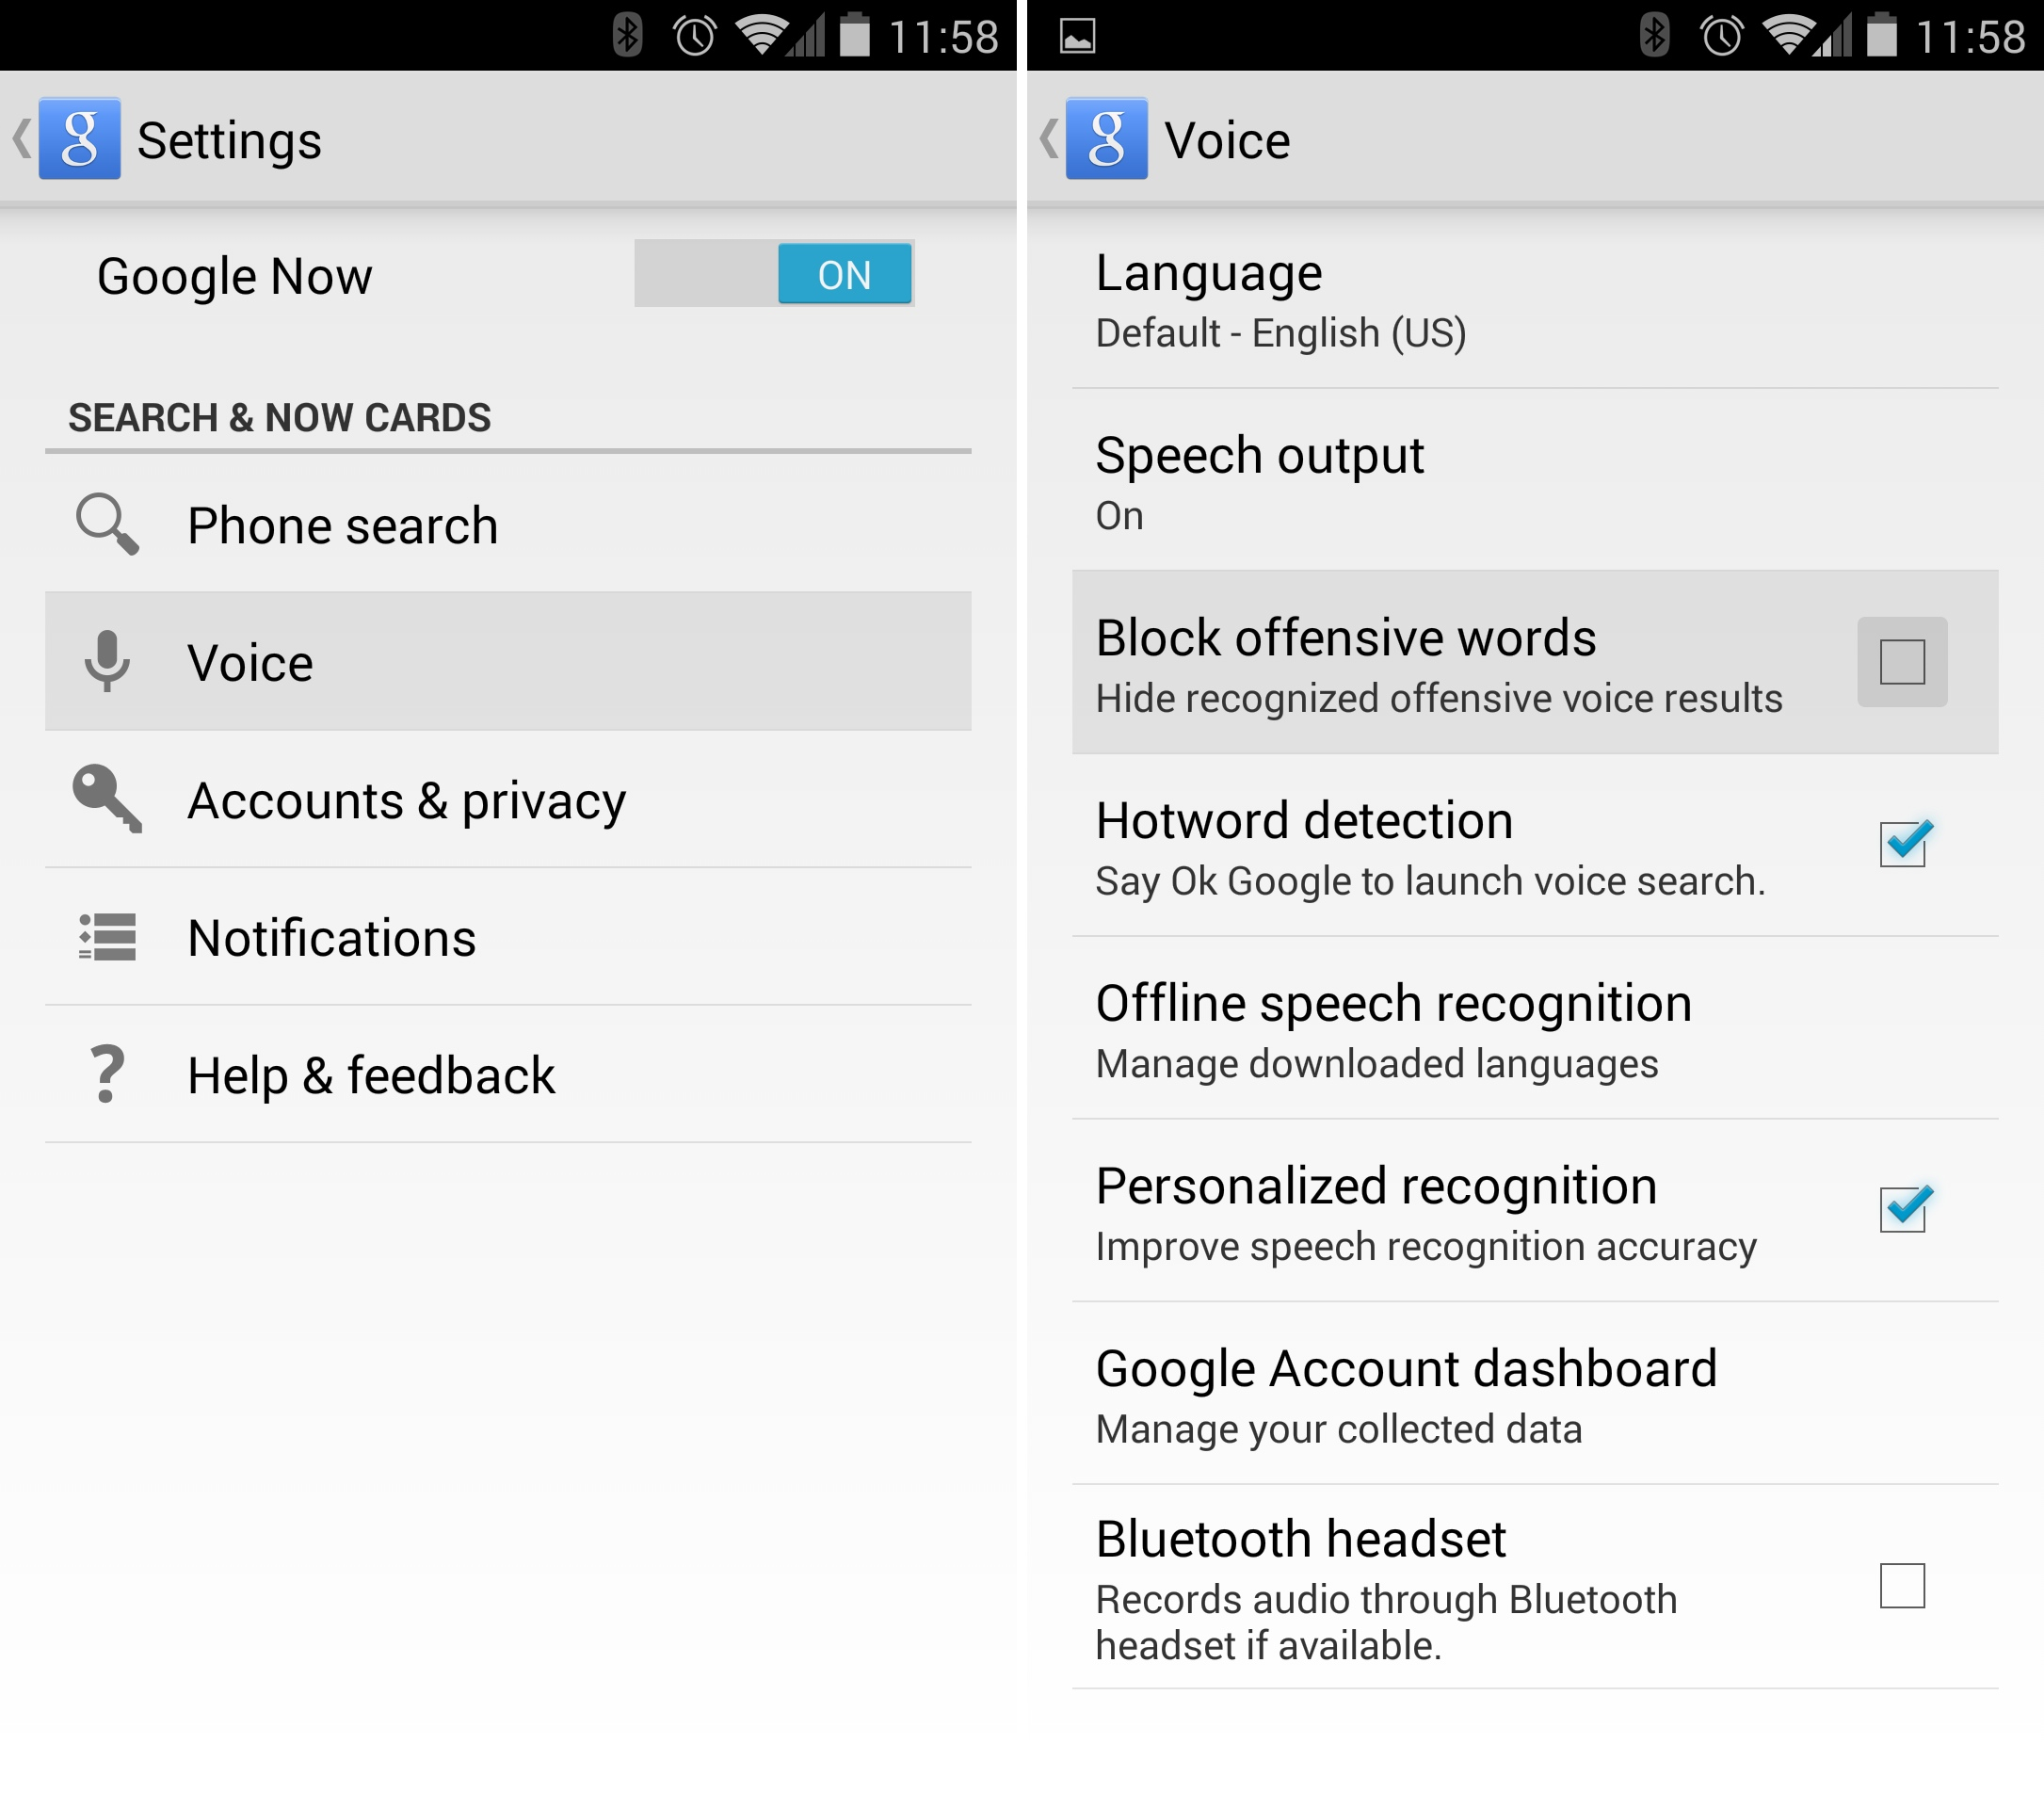 How to Swear on Android (And Disable Blocking Offensive Words)